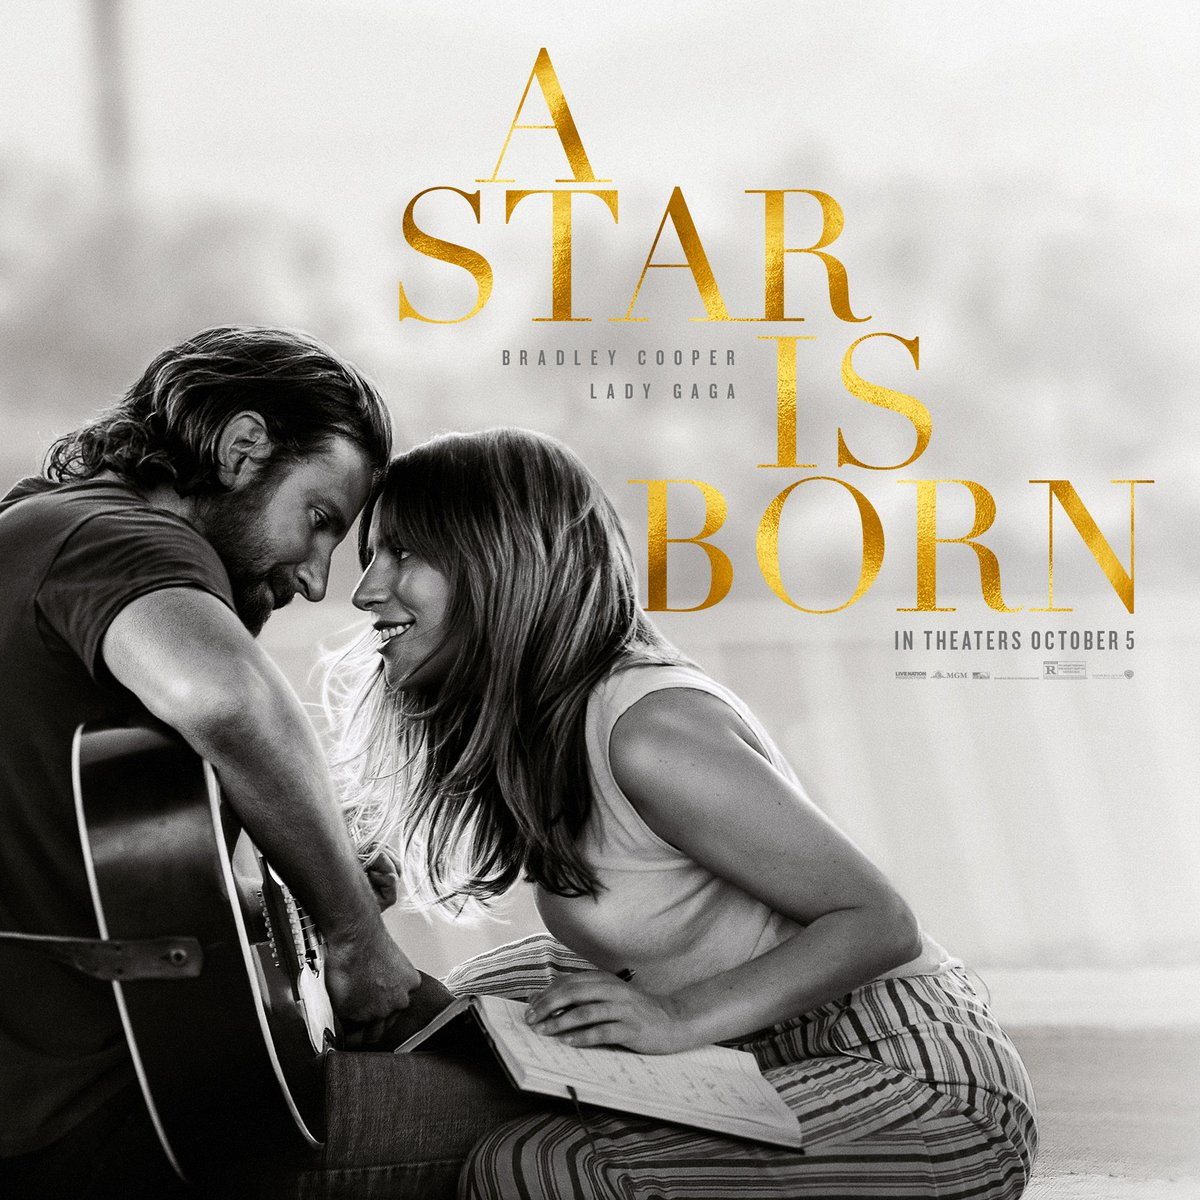 The Venice Film Festival begins August 29 and possibly the most anticipated American entry is the world premiere of A Star Is Born starring Lady Gaga